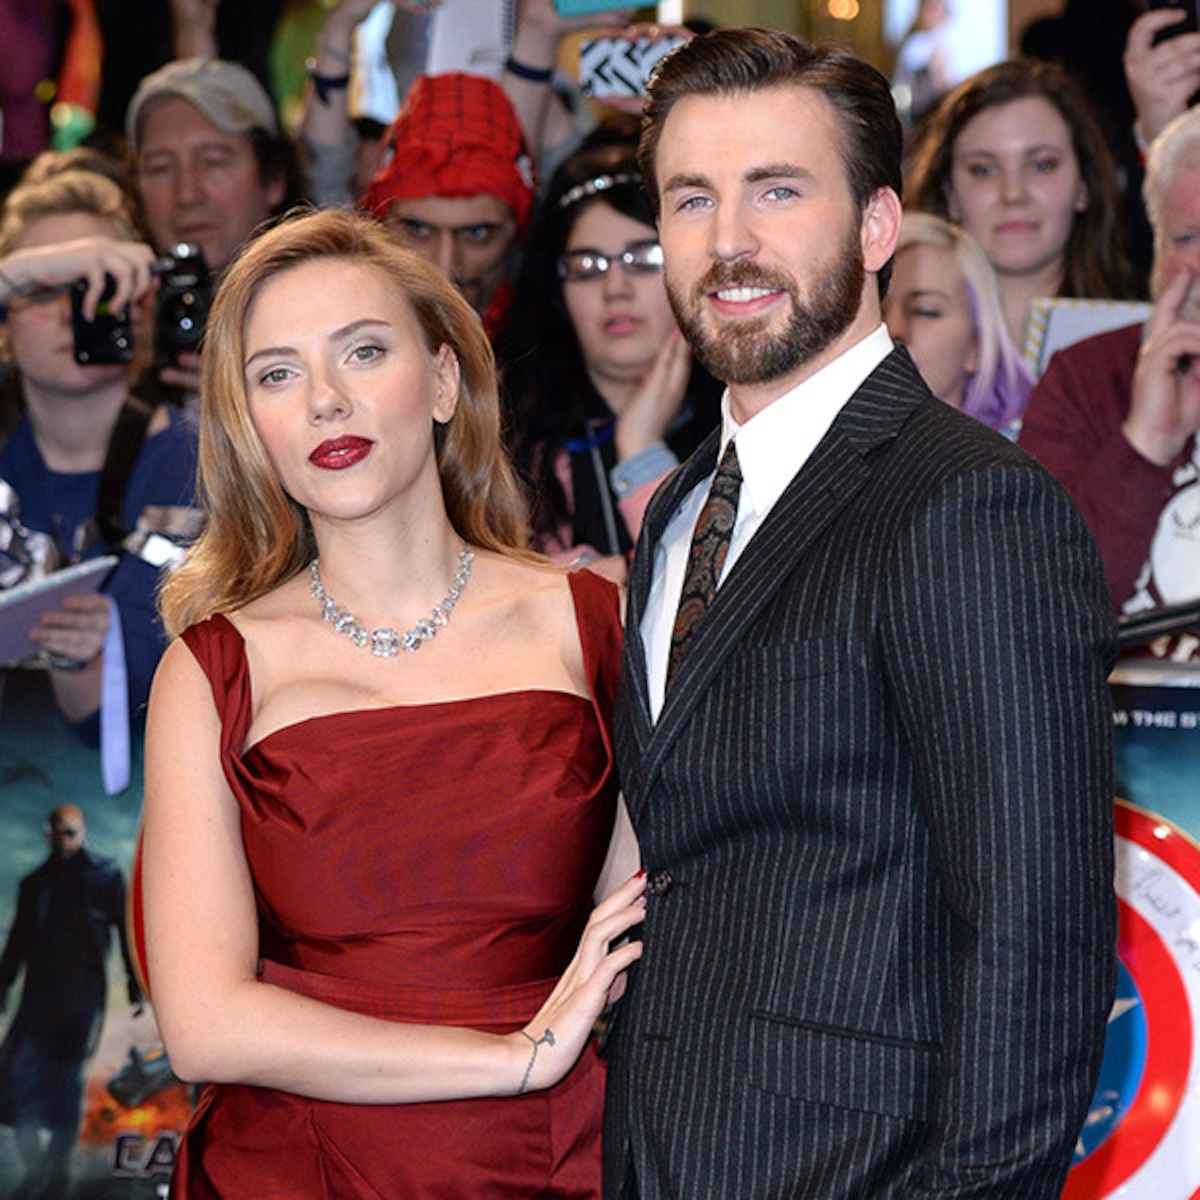 Why Marvel Fans Can T Stop Shipping Scarlett Johansson And Chris Evans E Online